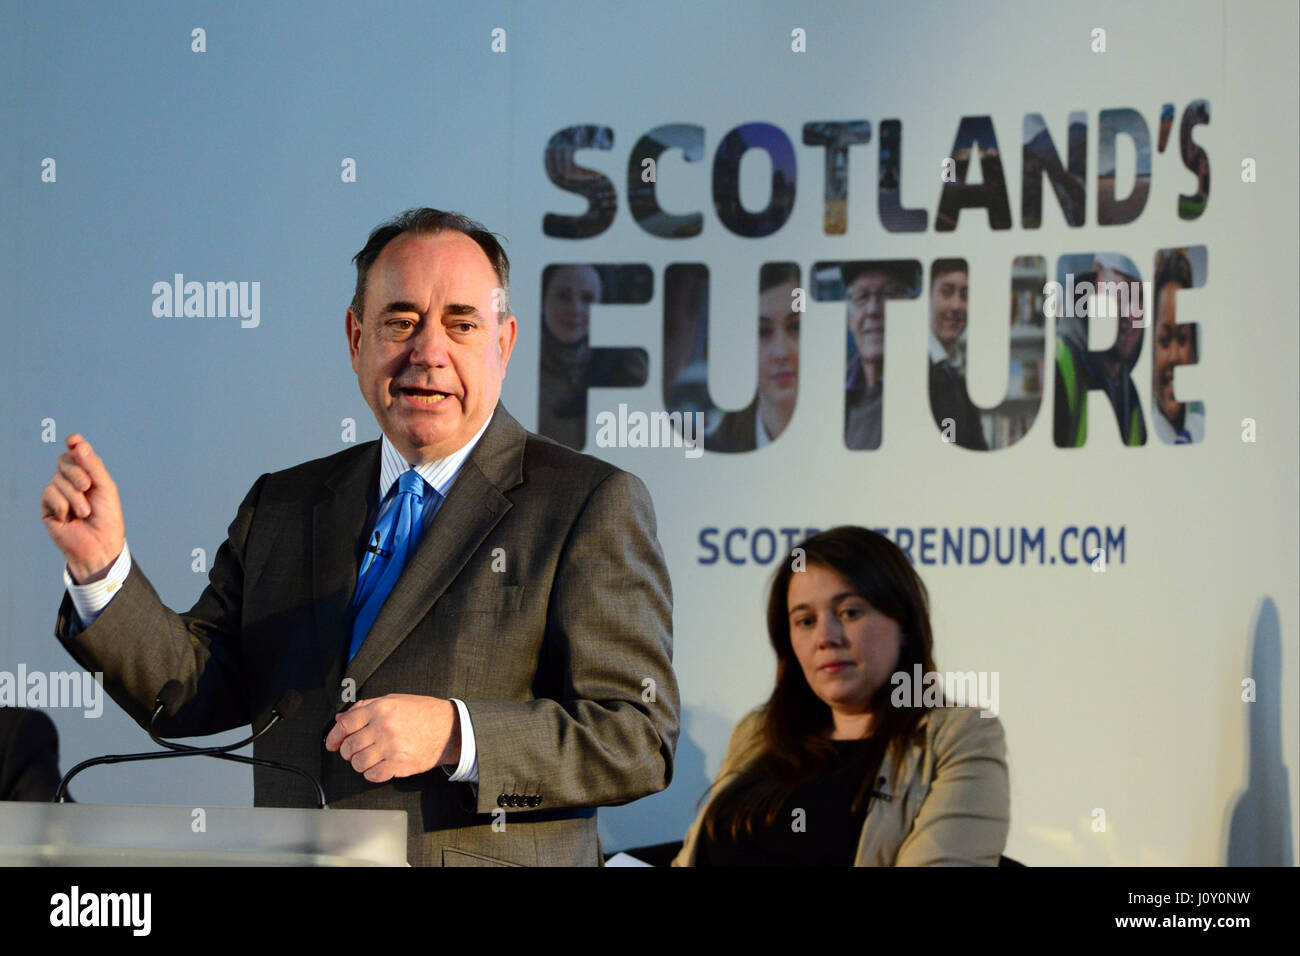 Scotland's First Minister Alex Salmond addresses a public meeting in Arbroath as Cabinet colleagues look on - Stock Image